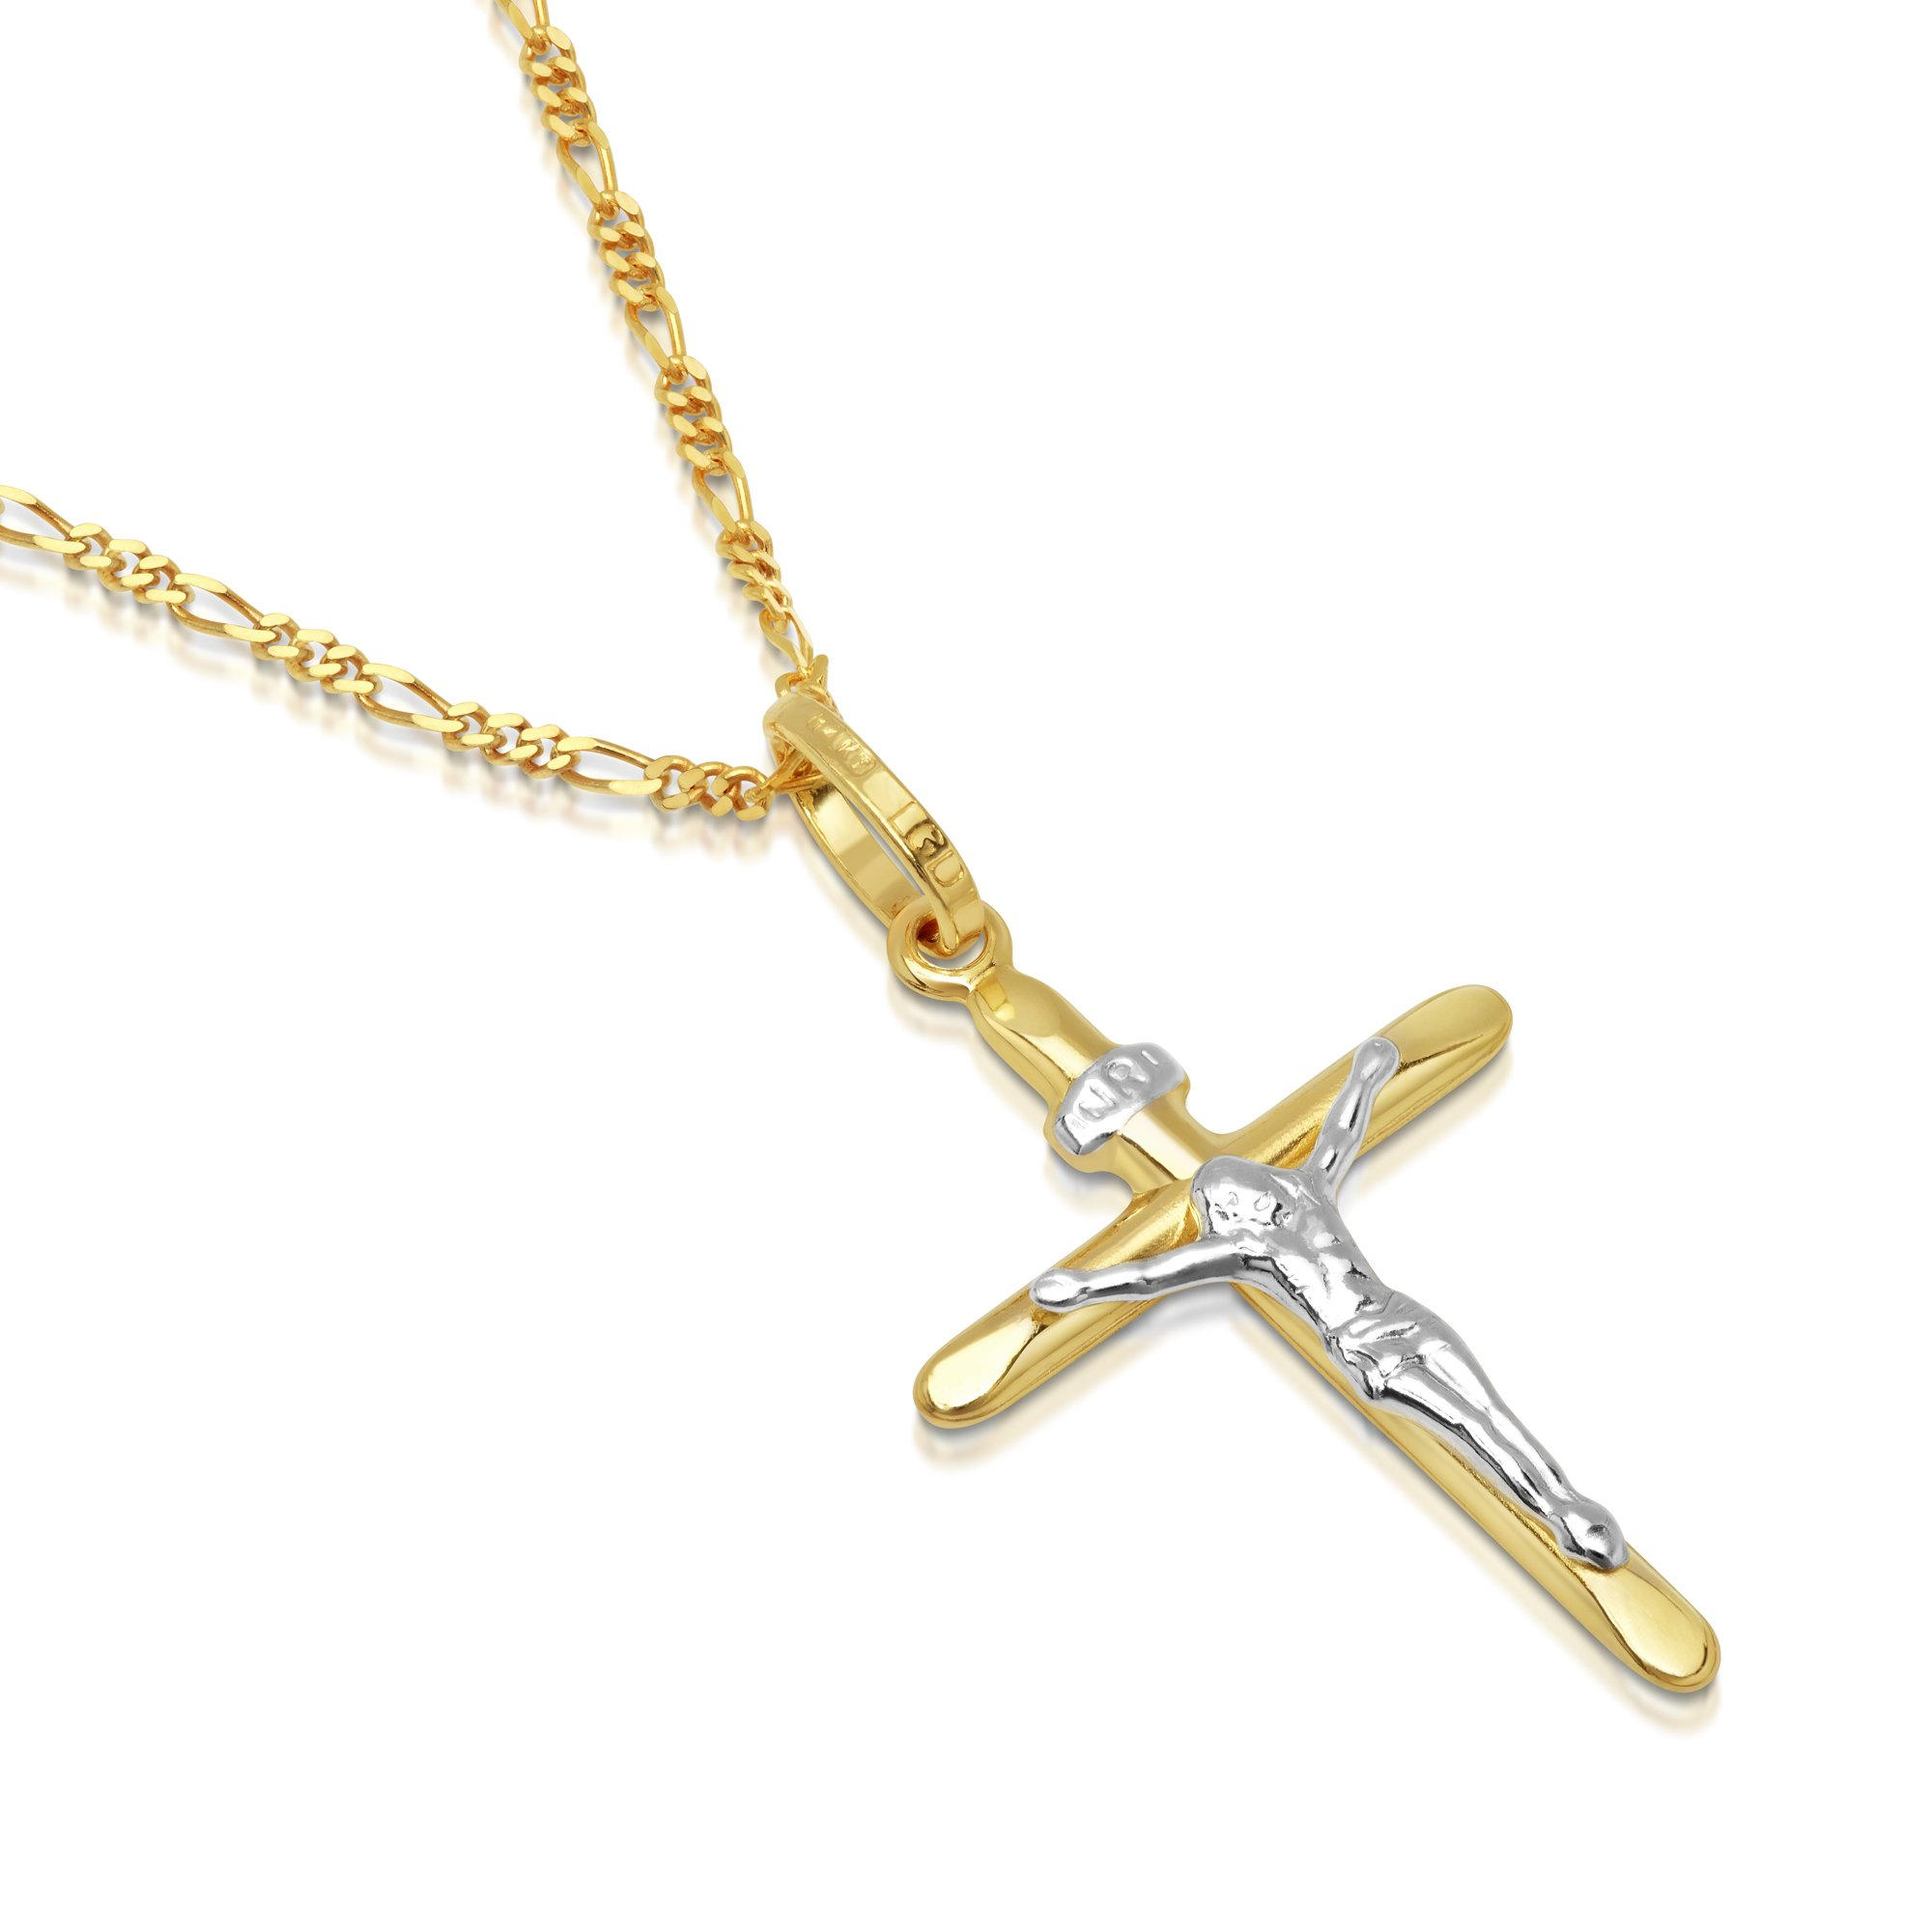 DTLA Solid 14K Gold Figaro Chain Two-Tone Cross Pendant Crucifix Necklace - 20''